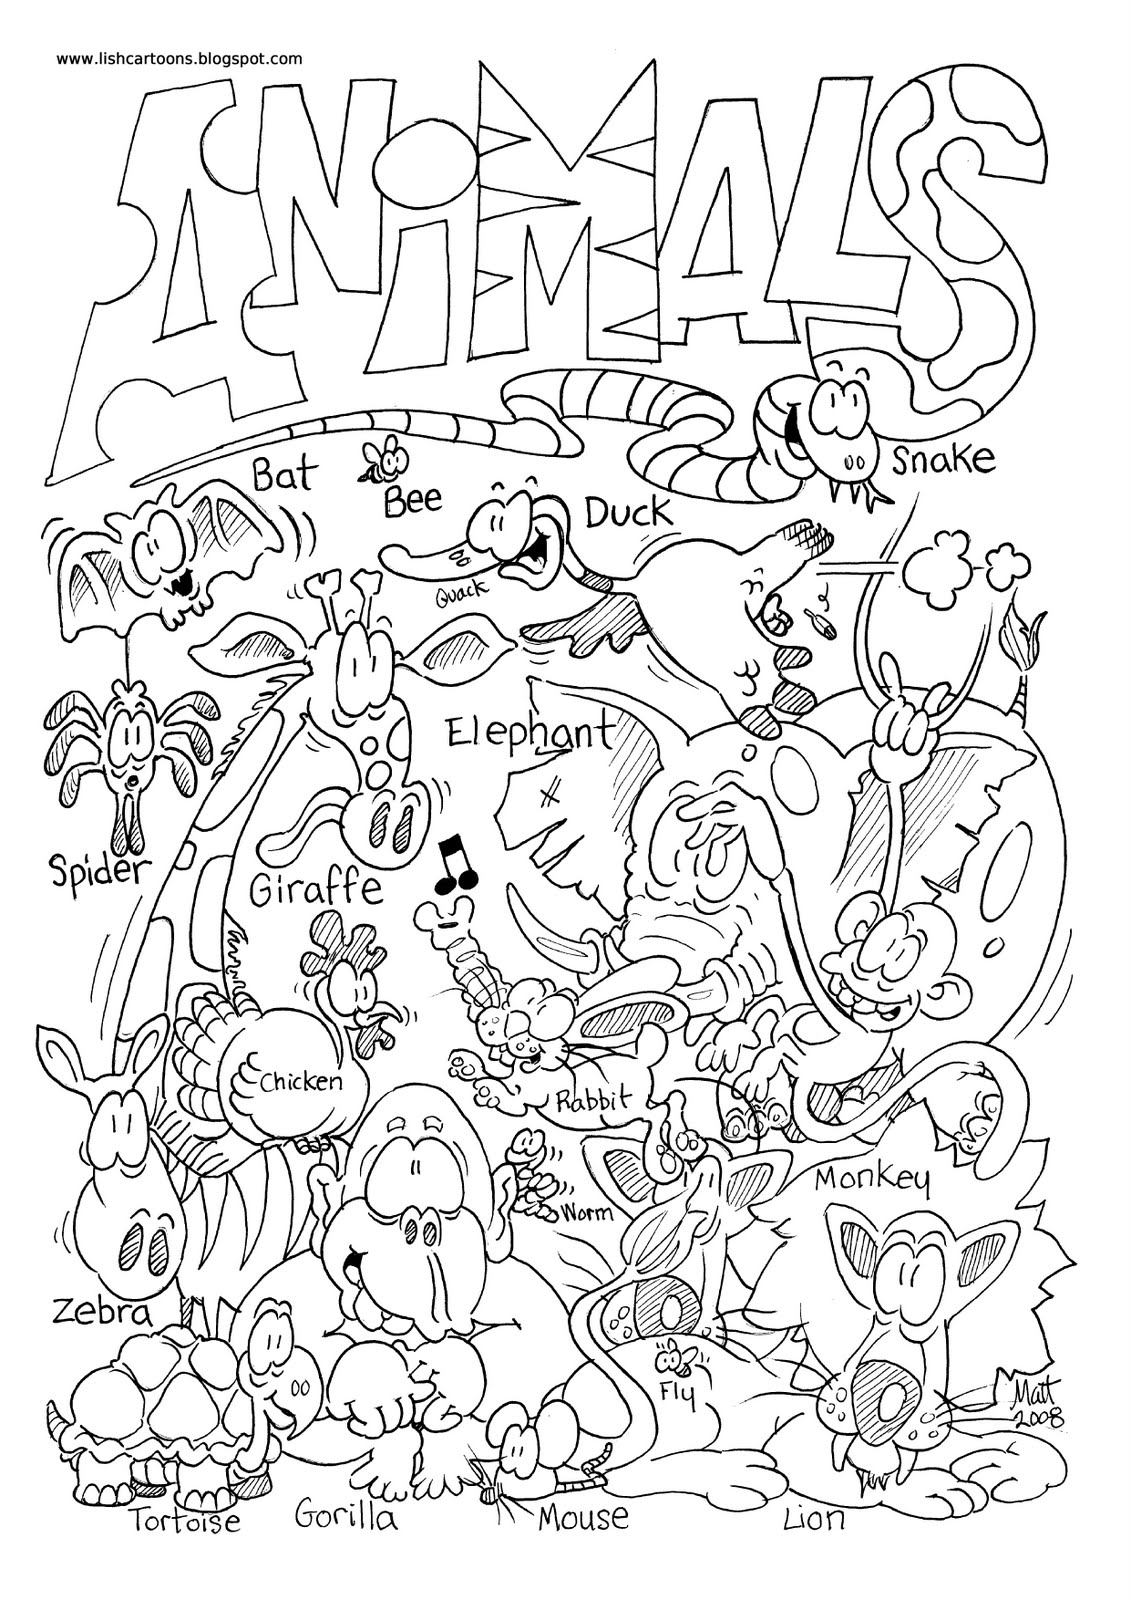 zoo coloring page zoo animal coloring pages for preschool at getdrawings coloring zoo page